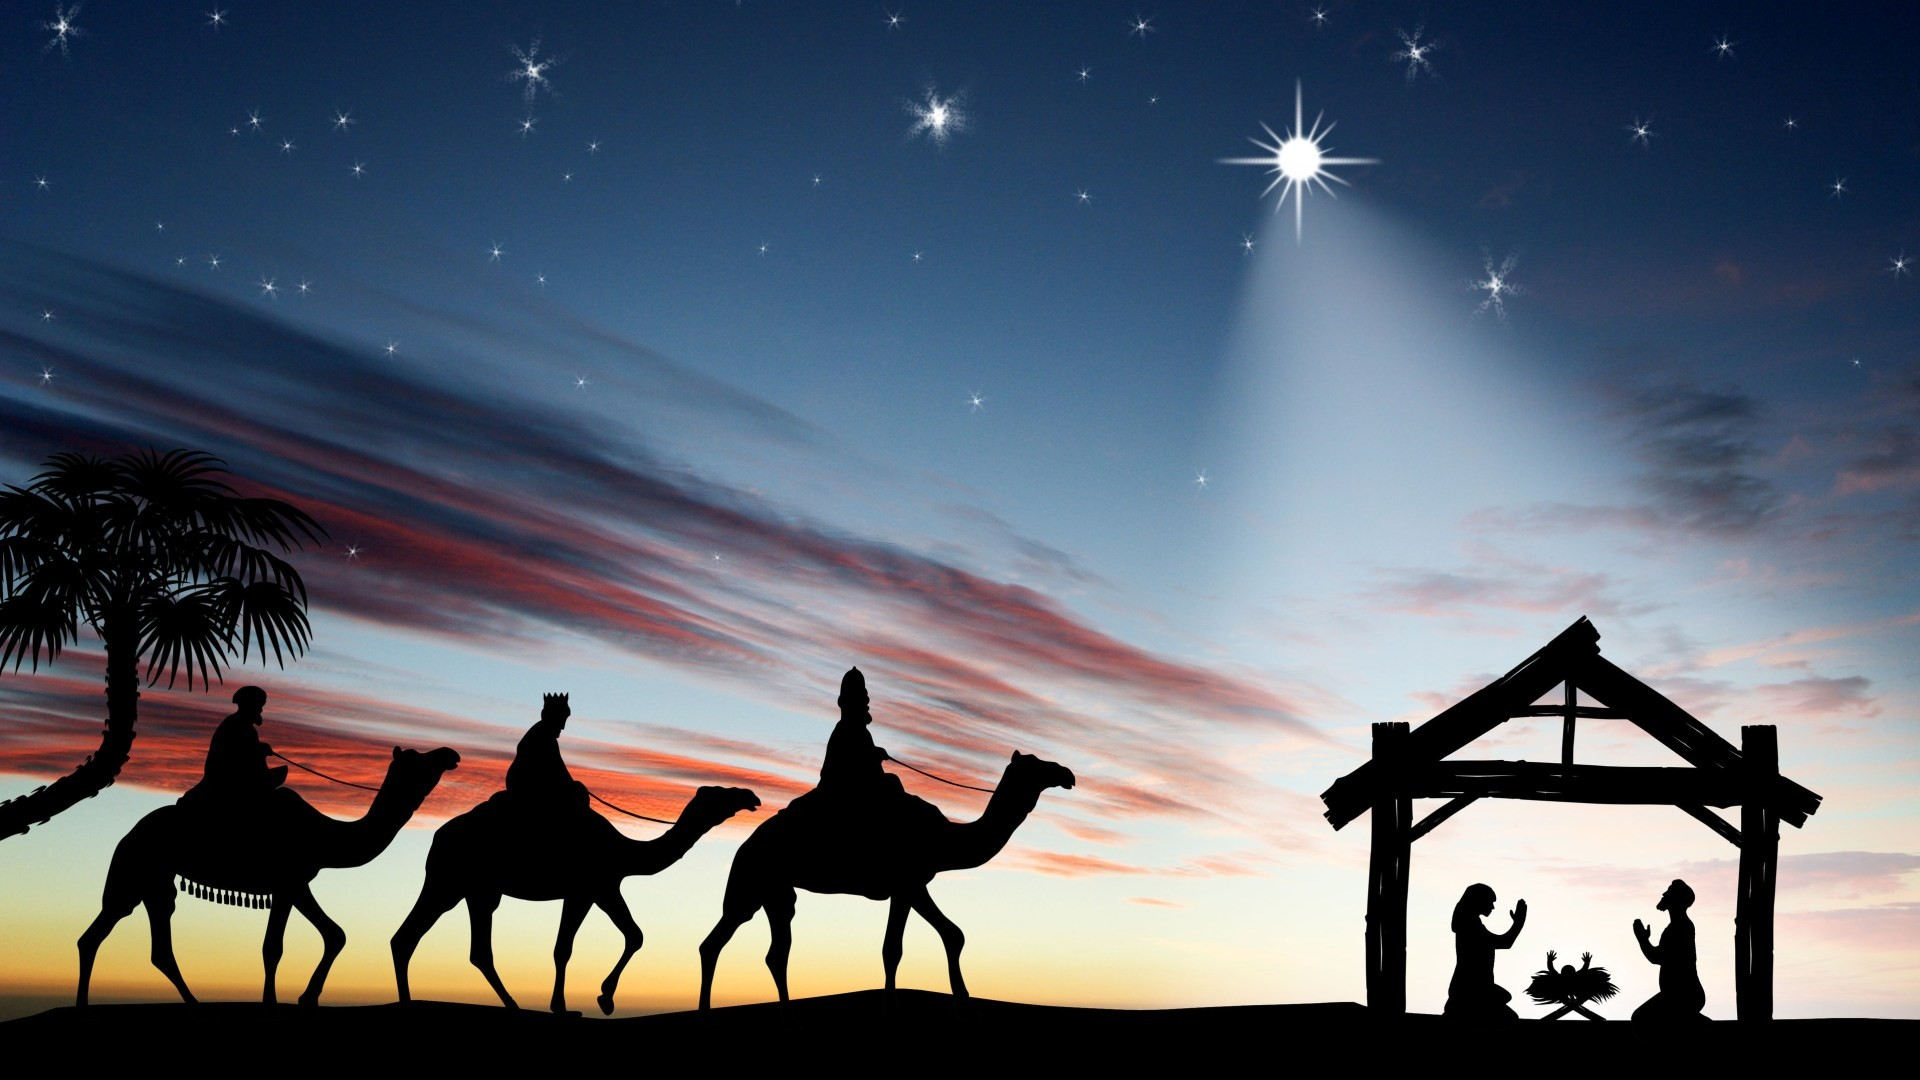 nativity wallpaper  u00b7 u2460 download free beautiful full hd